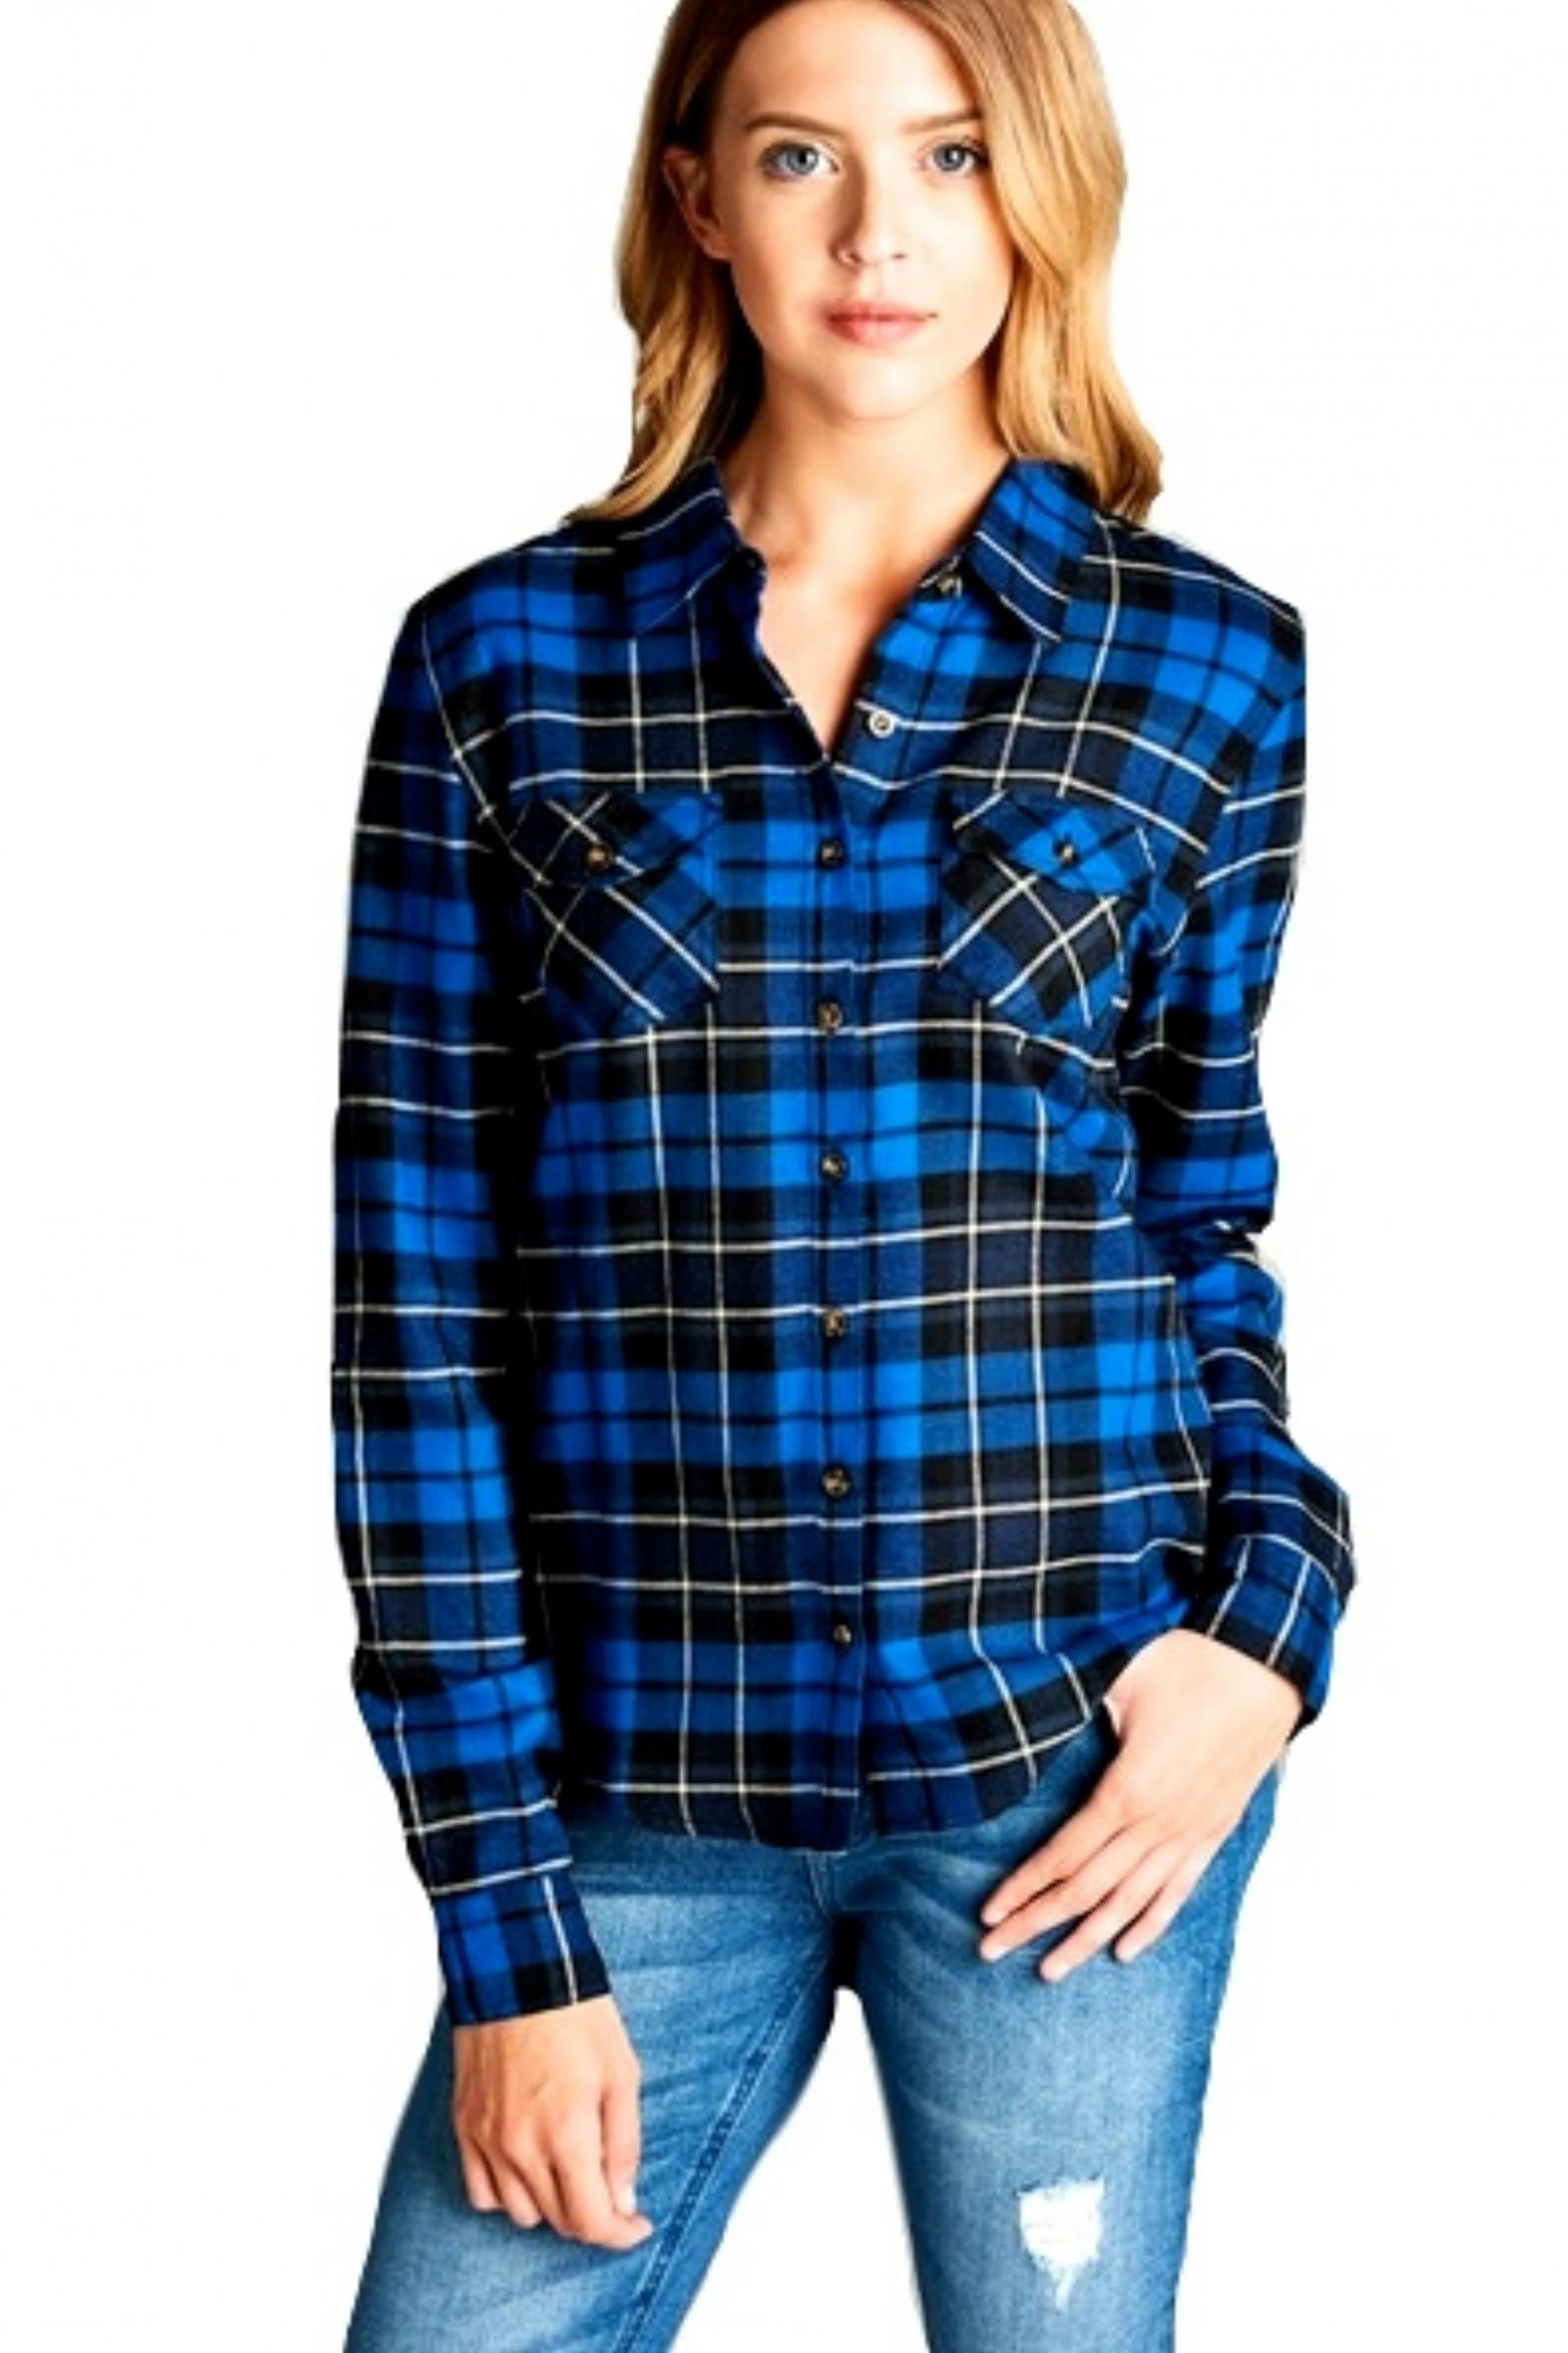 Blue and Black Tartan Plaid Shirt